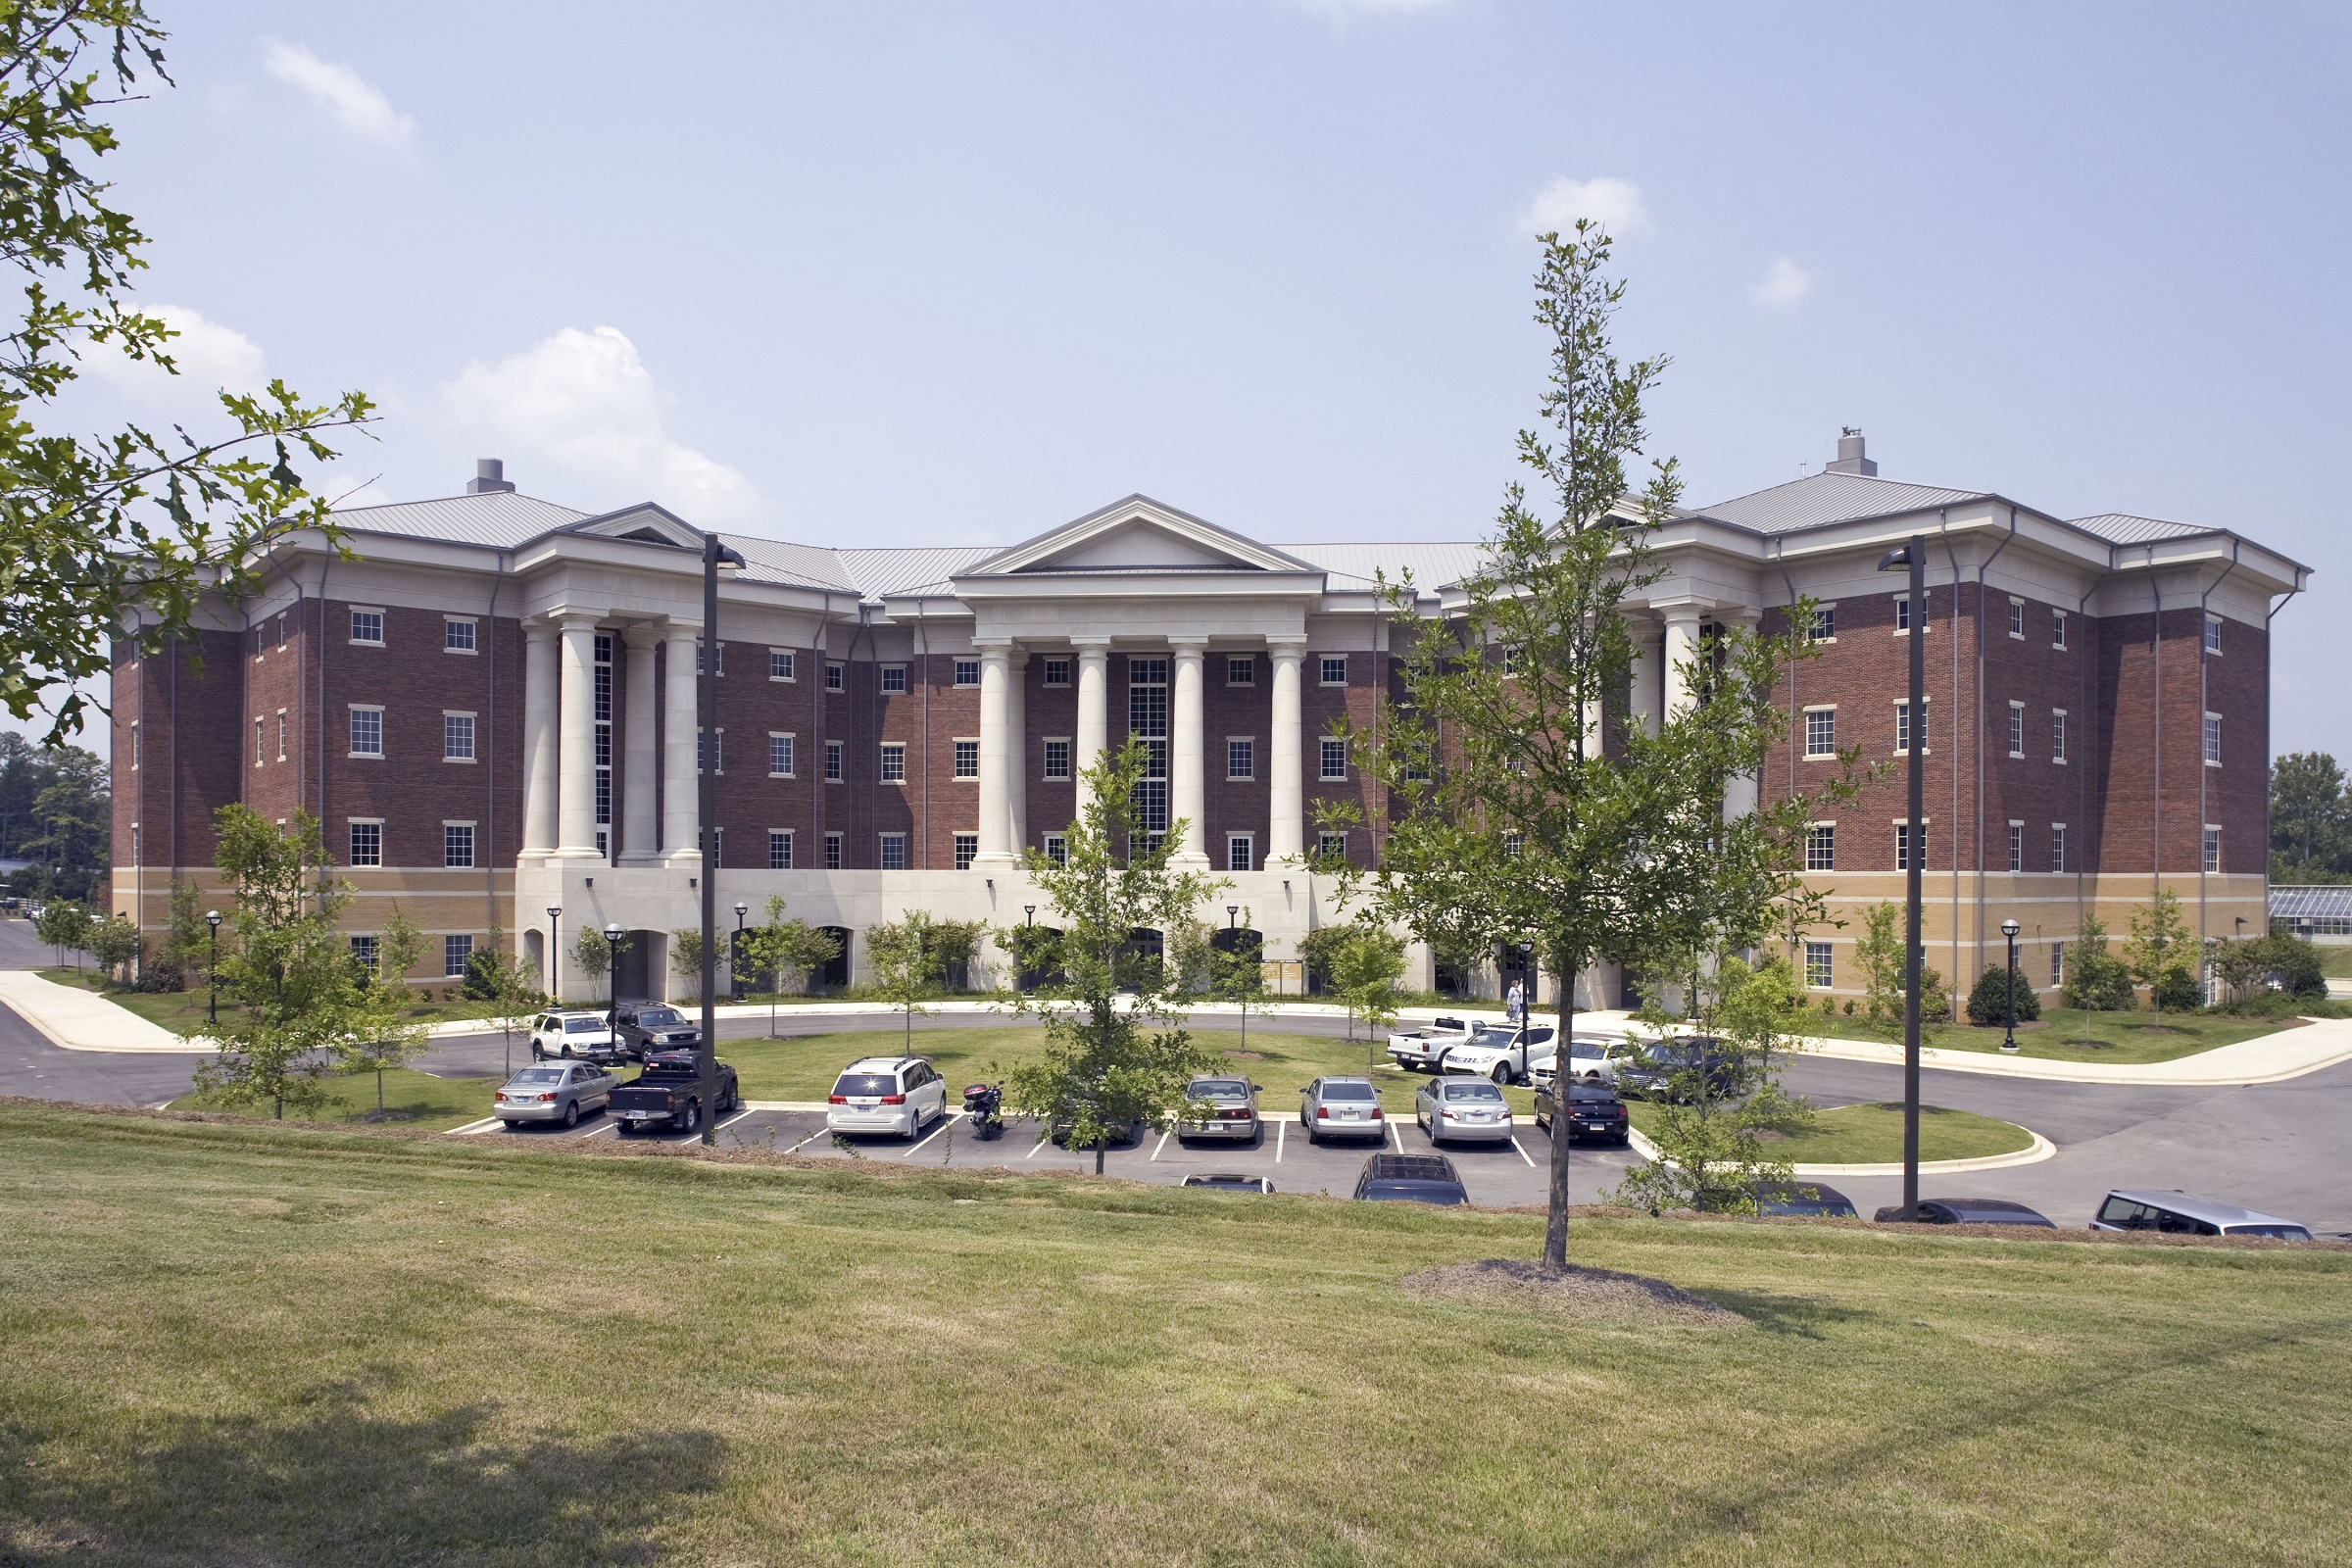 Jefferson State Health Sciences